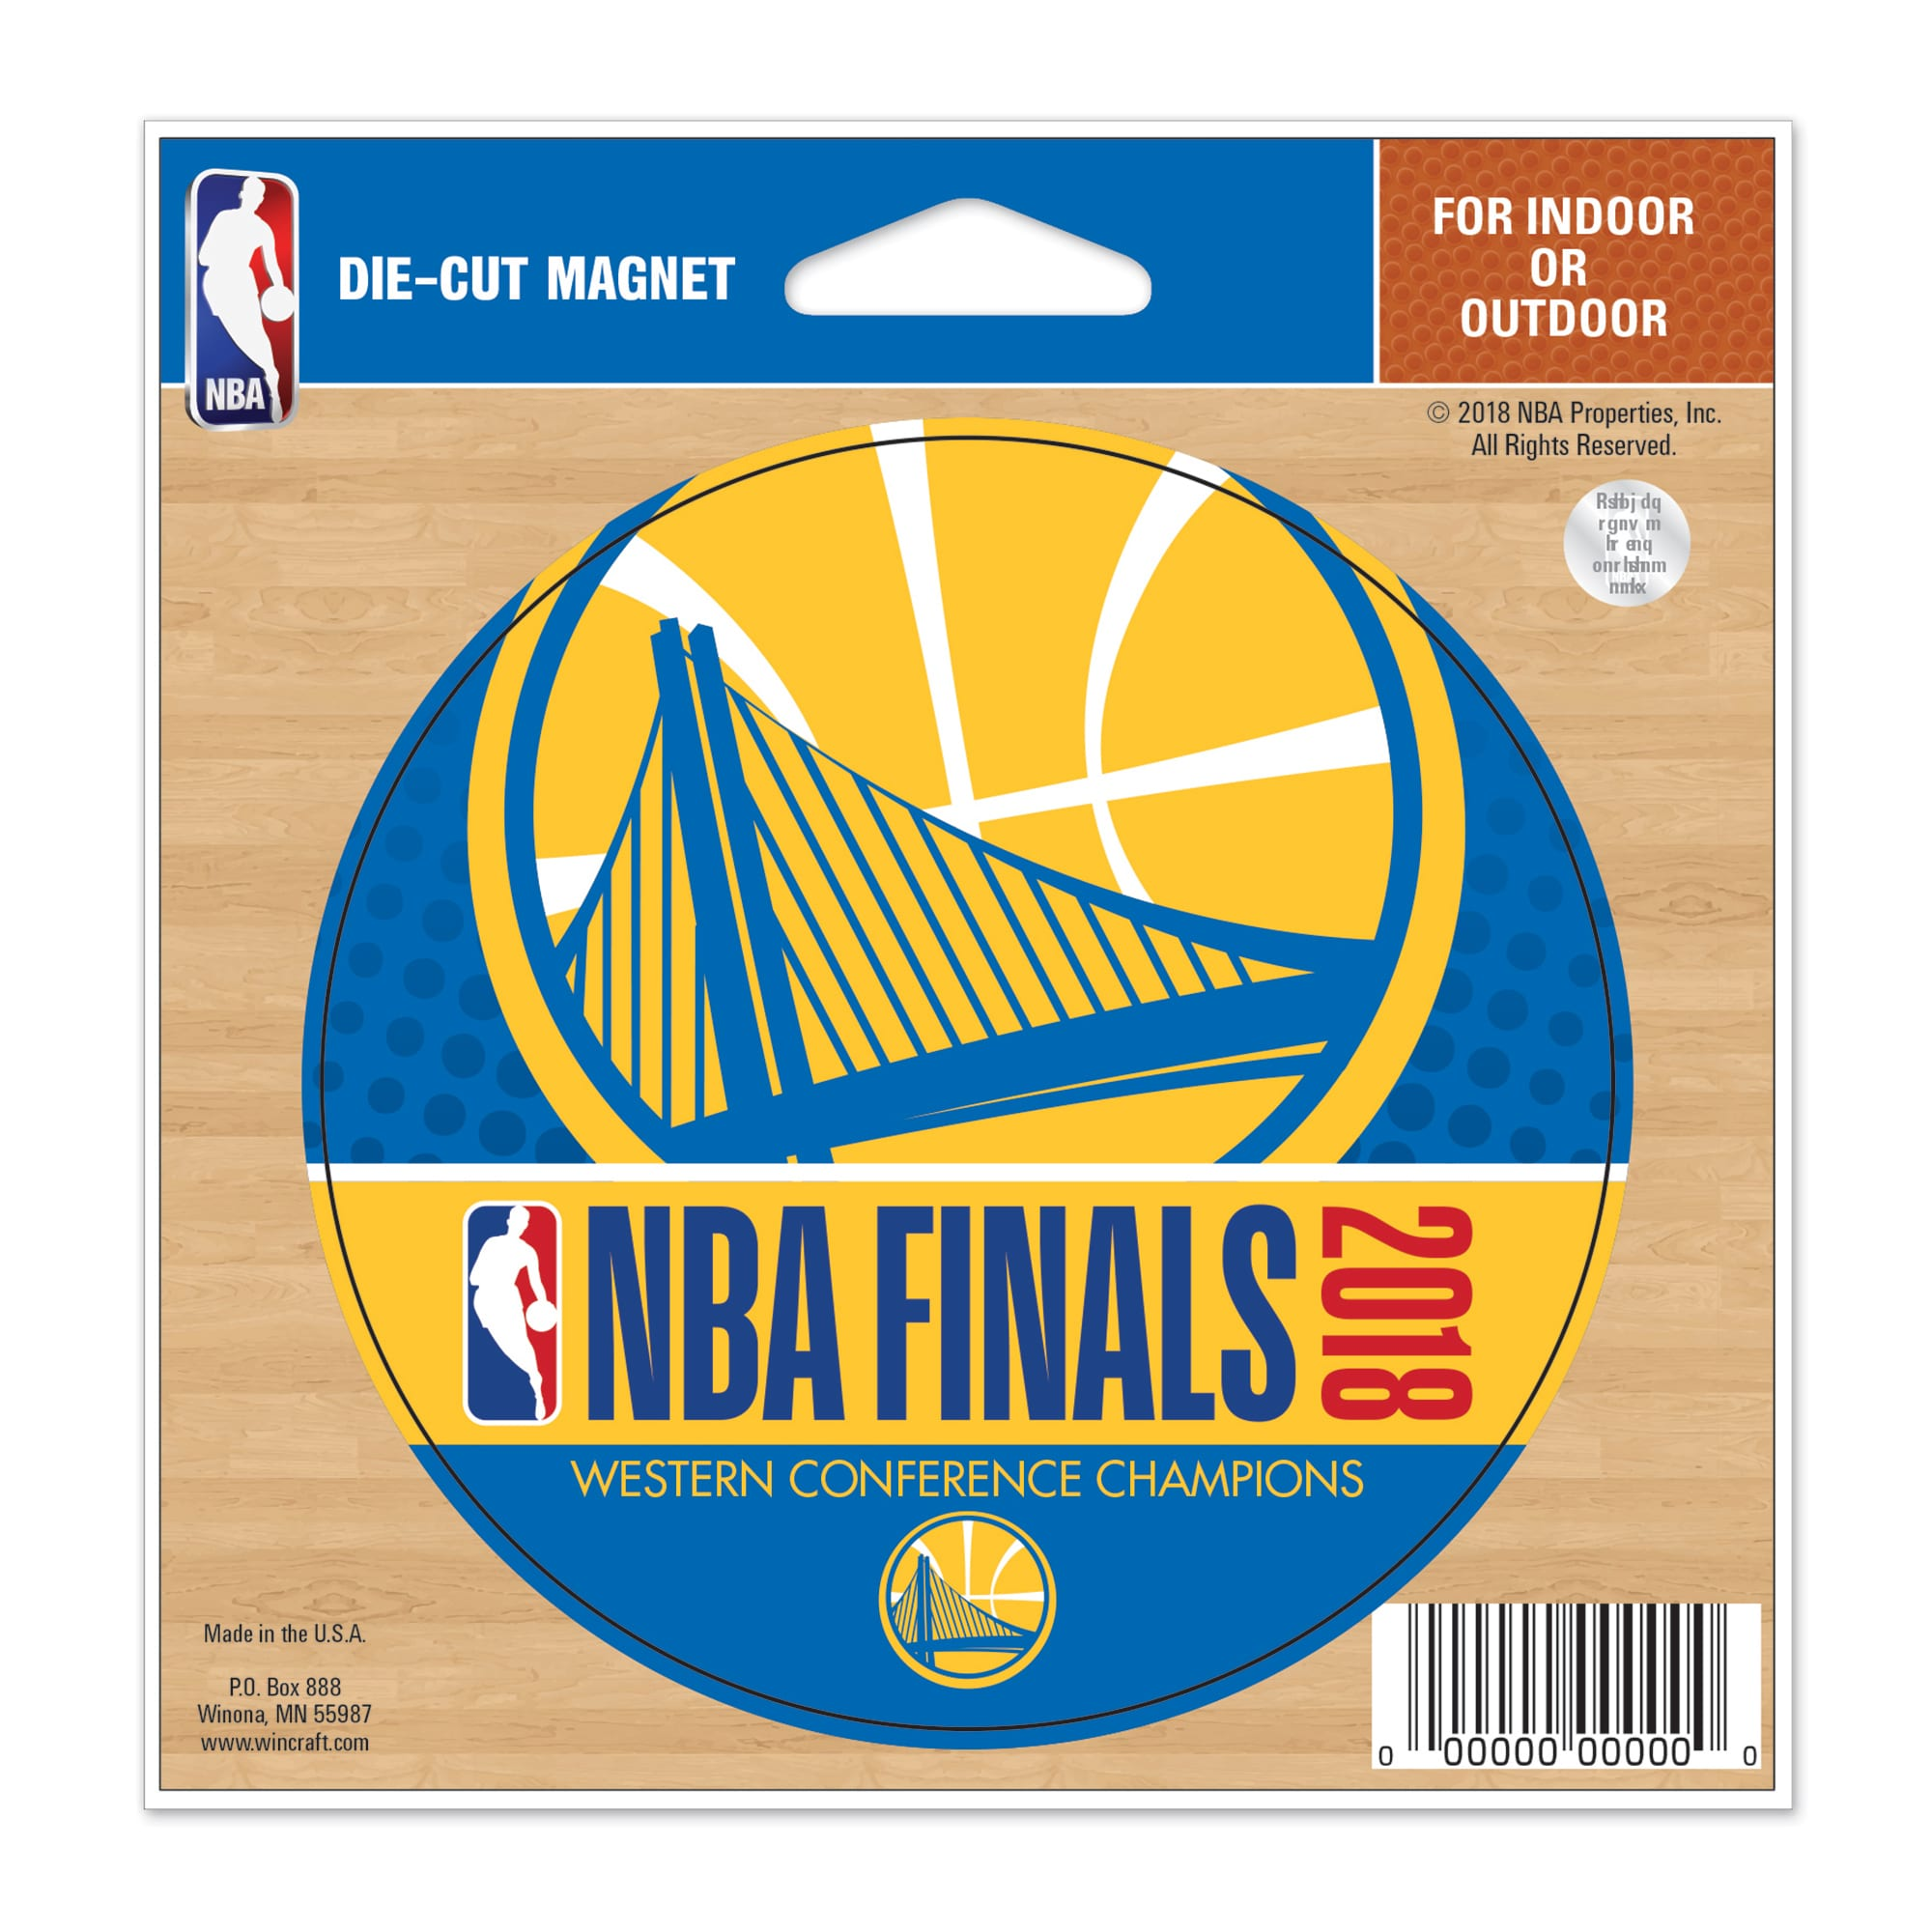 "Golden State Warriors WinCraft 2018 Western Conference Champions 5"" x 6"" Die-Cut Magnet"